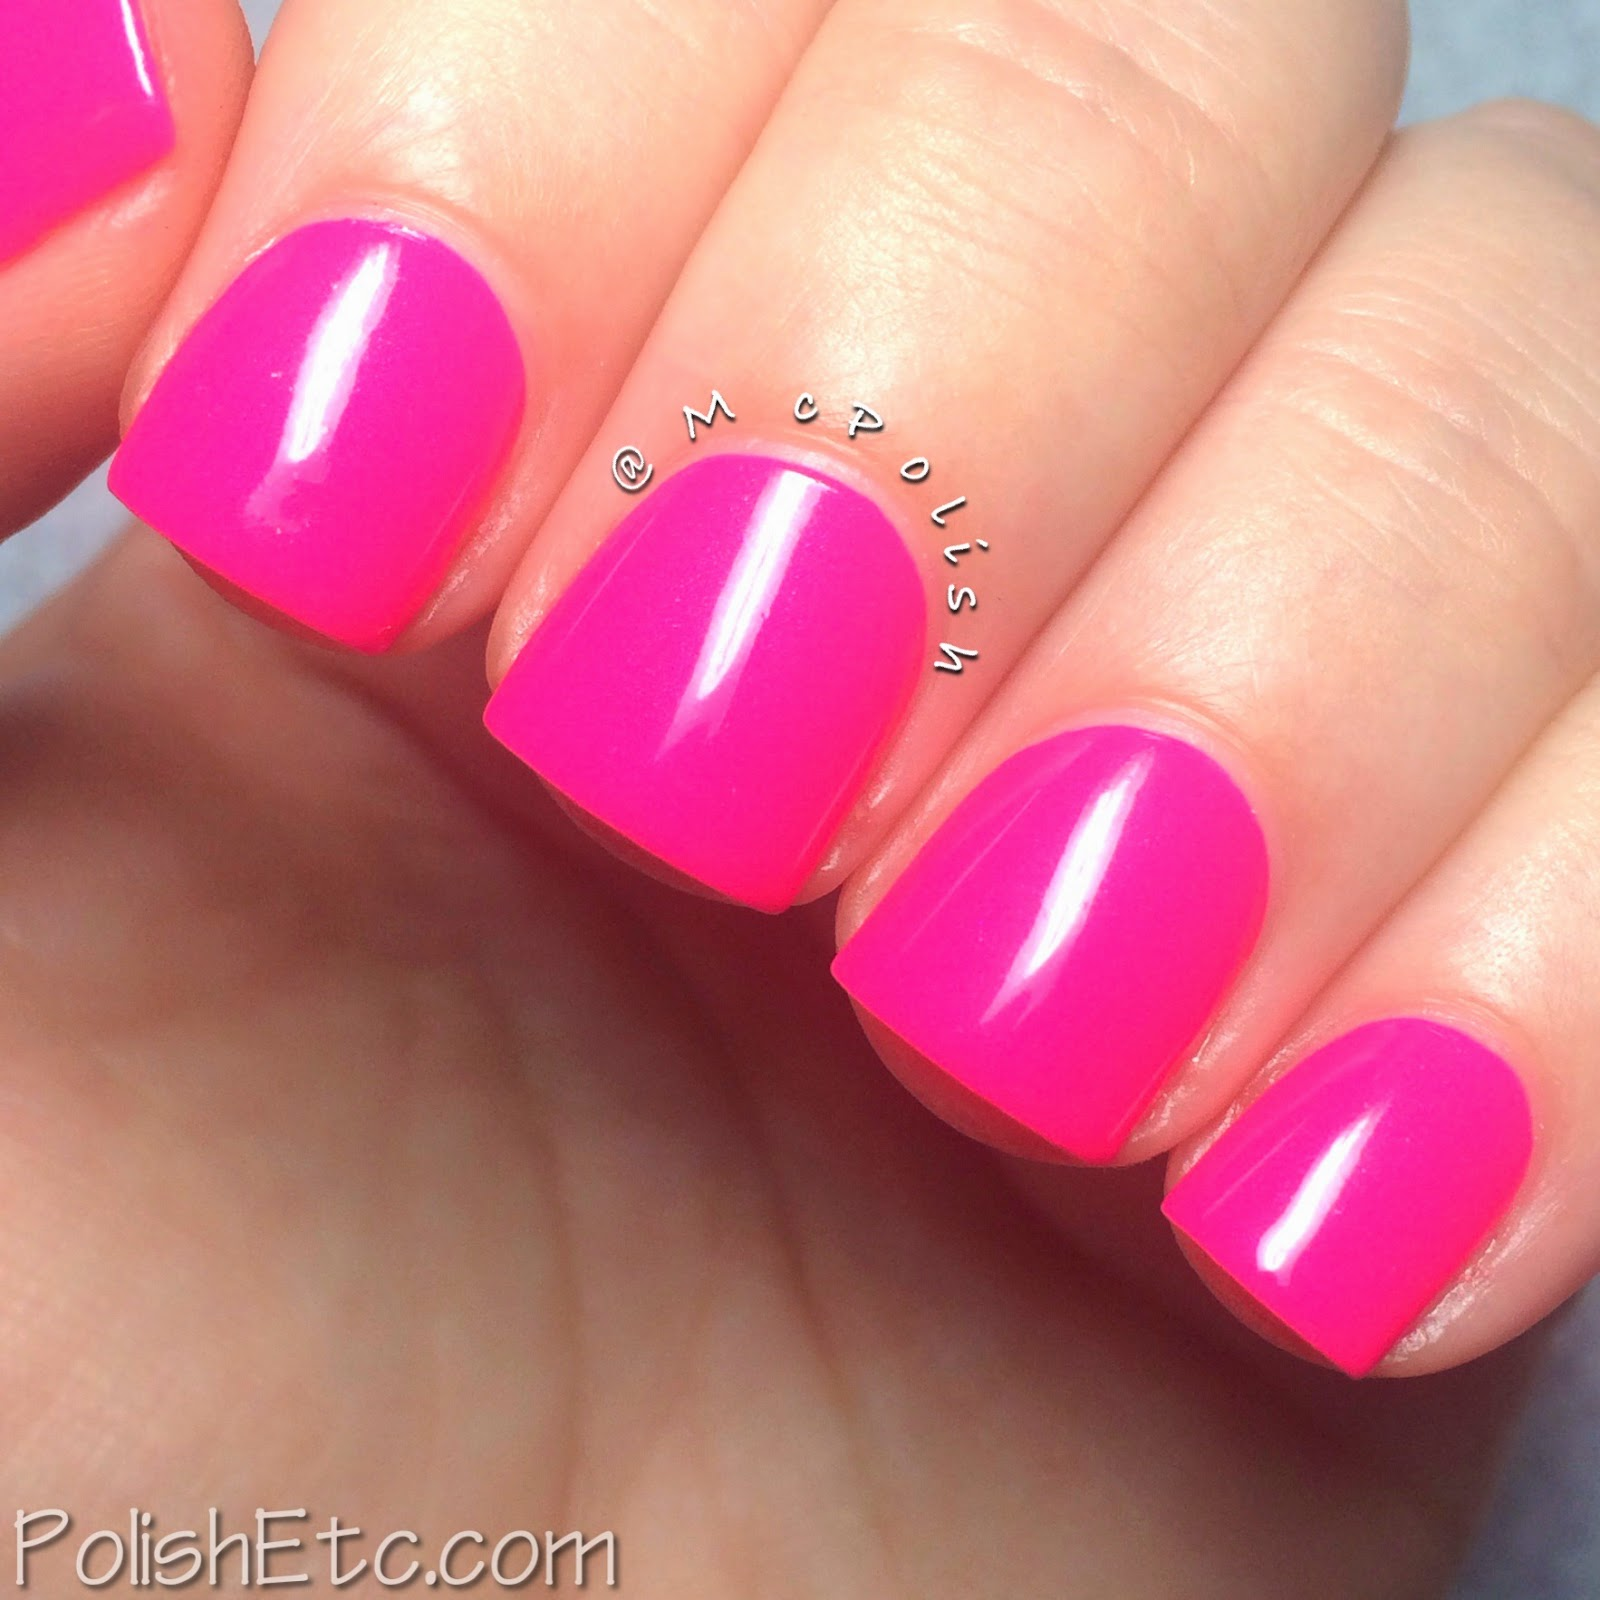 Pipe Dream Polish - A Night in Vegas Neons - On the List